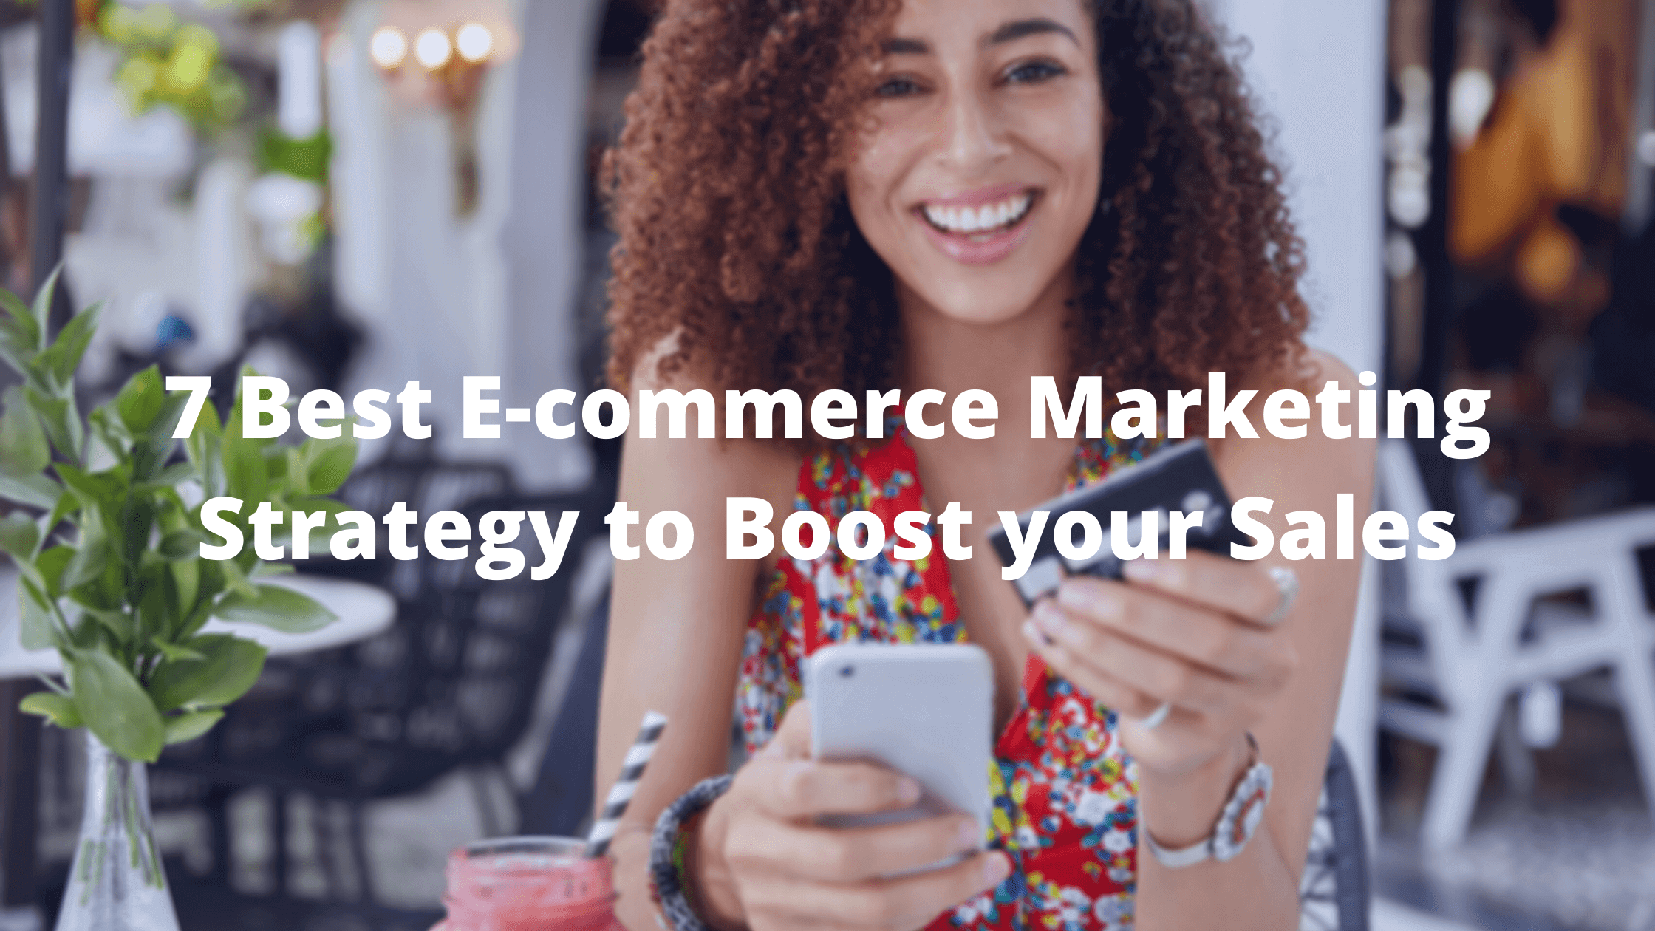 7 Best E-commerce Marketing Strategy to Boost your Sales